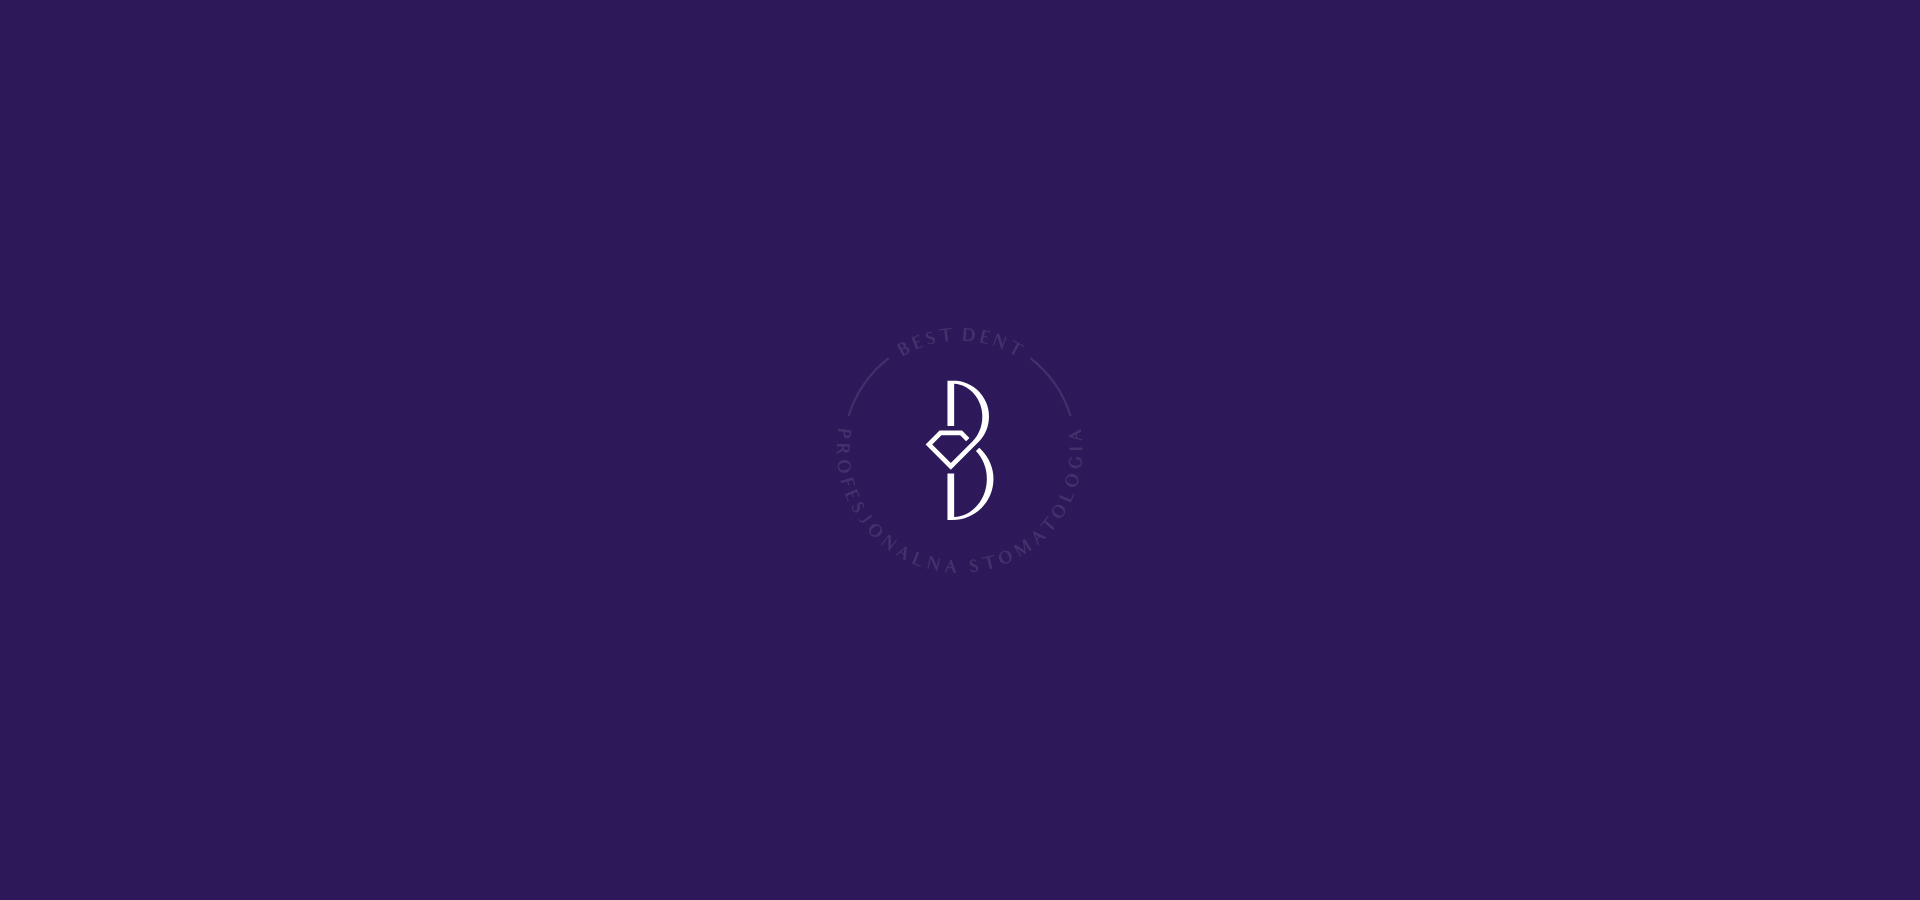 Dominik-Pacholczyk-Logo-Design-Collection-18